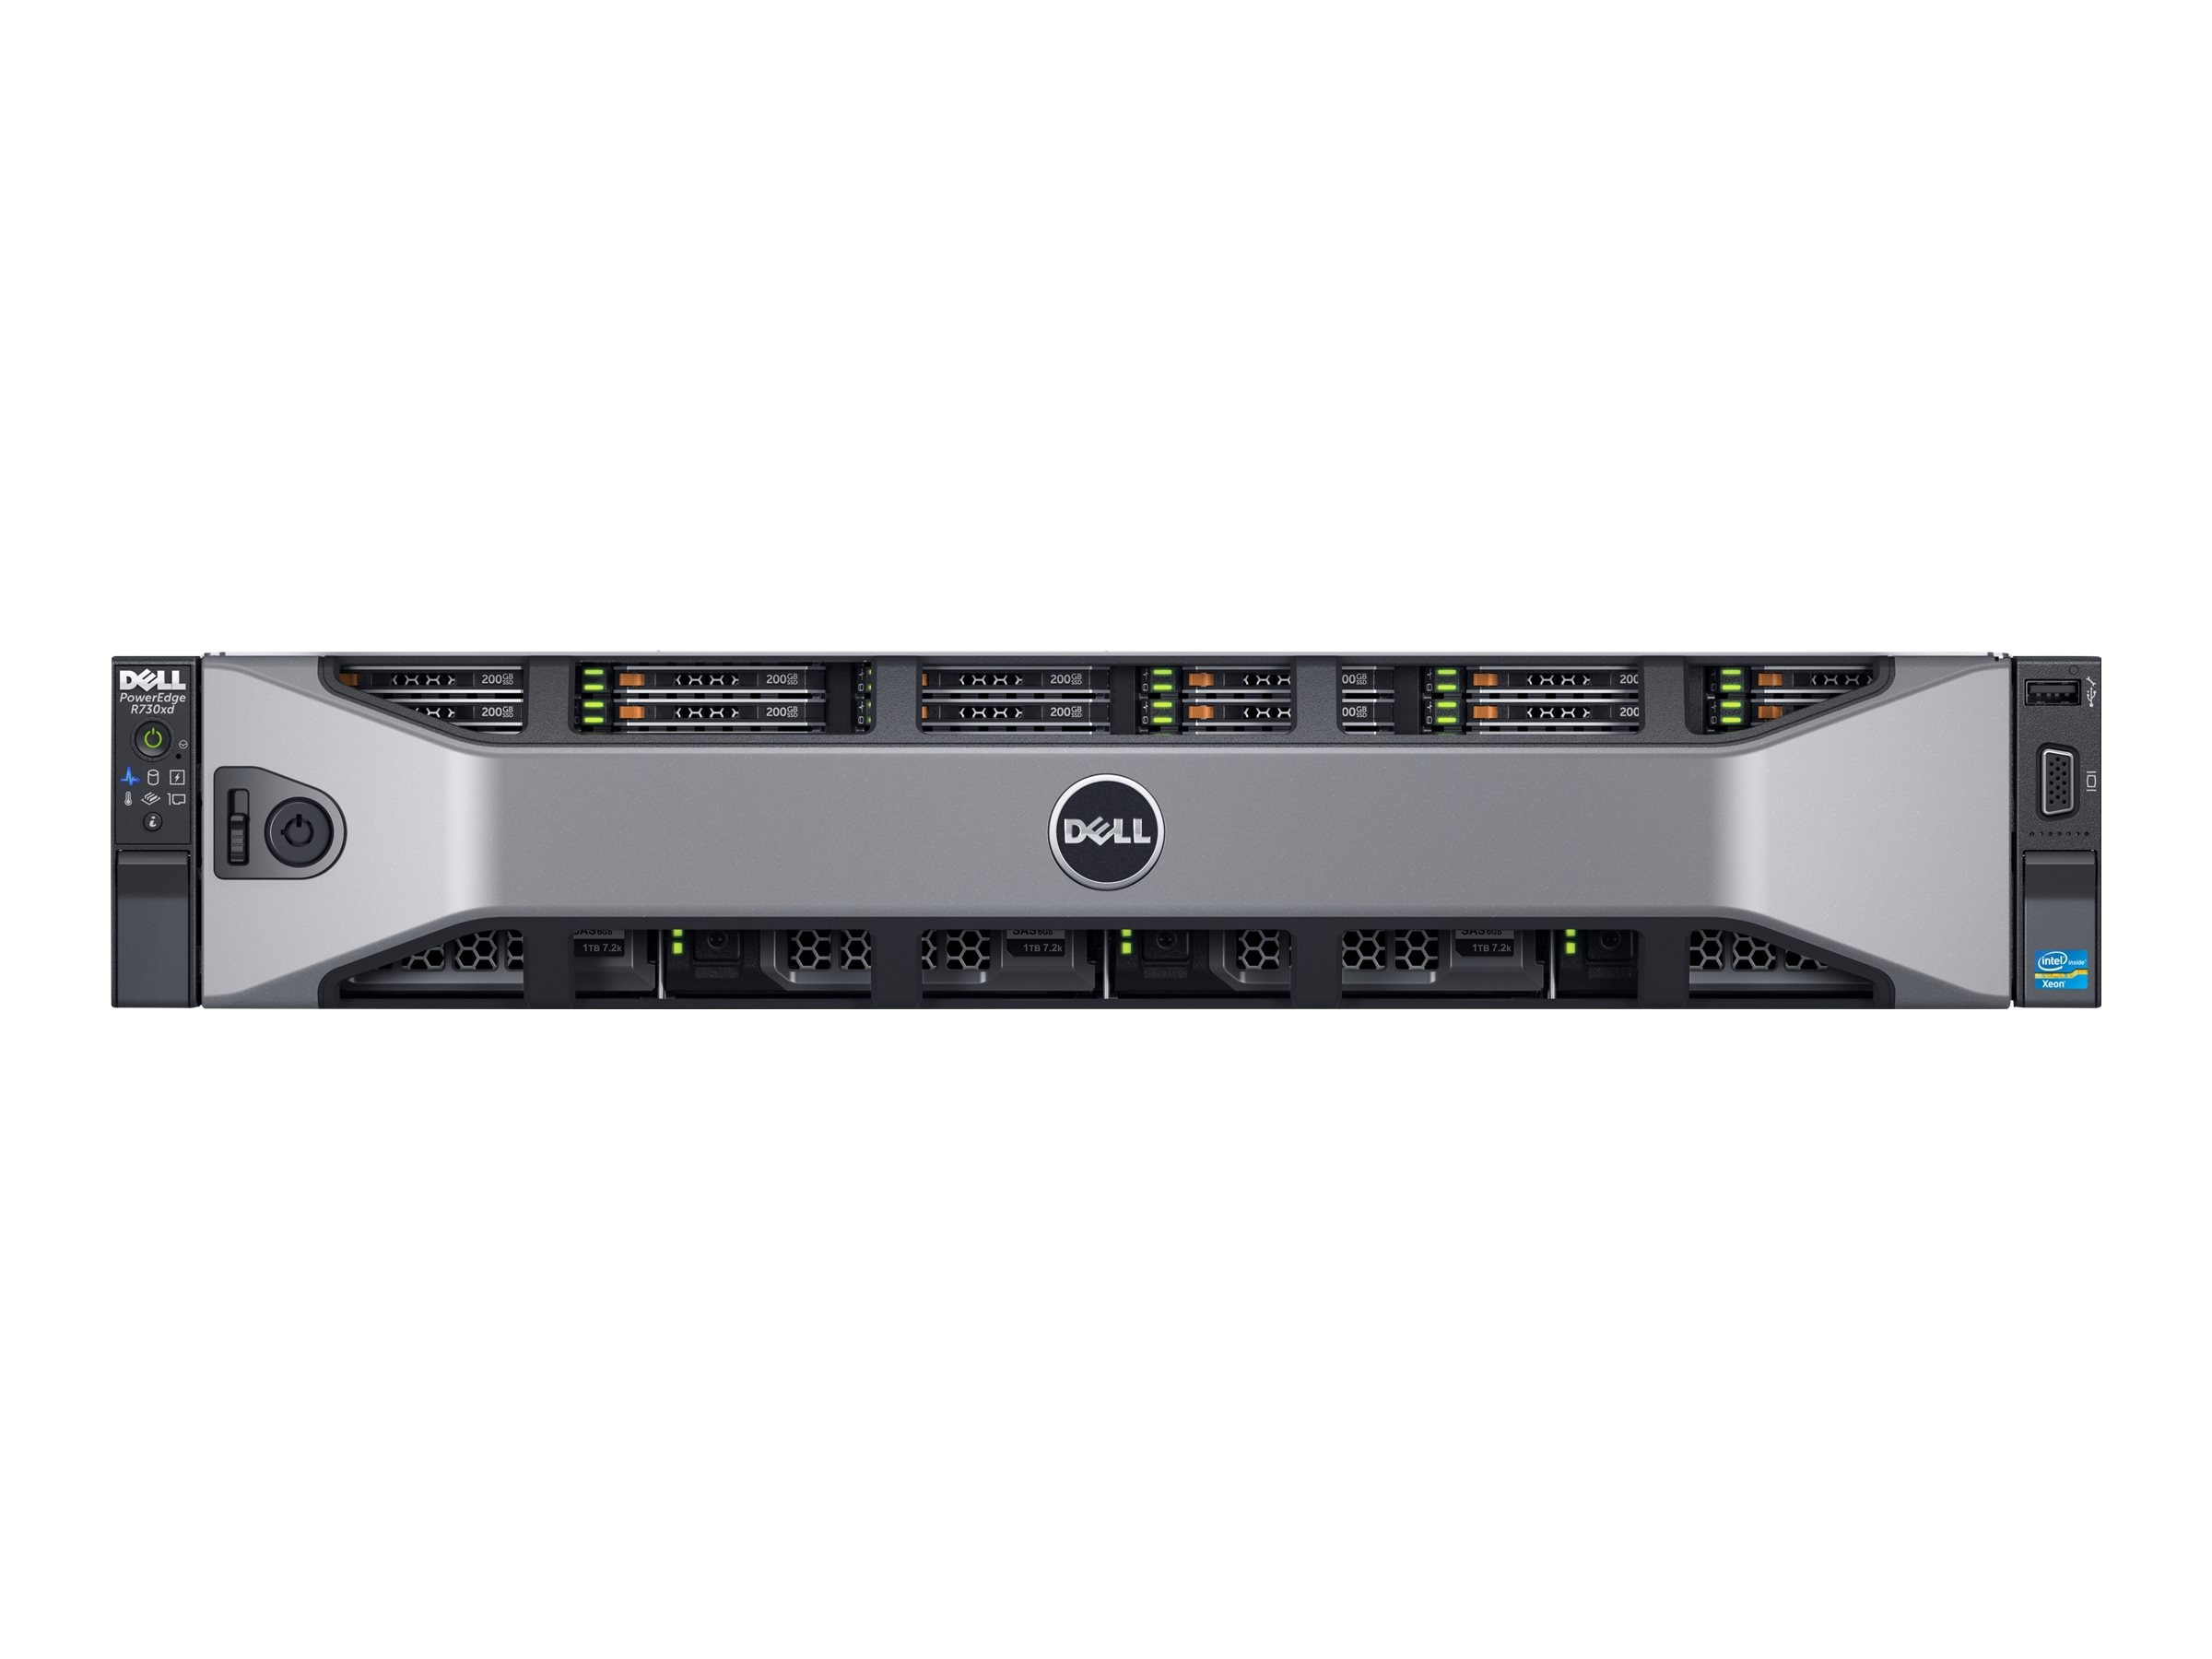 Dell PowerEdge R730xd Xeon E5-2620 v3 16GB H730, 463-3998, 18235051, Servers